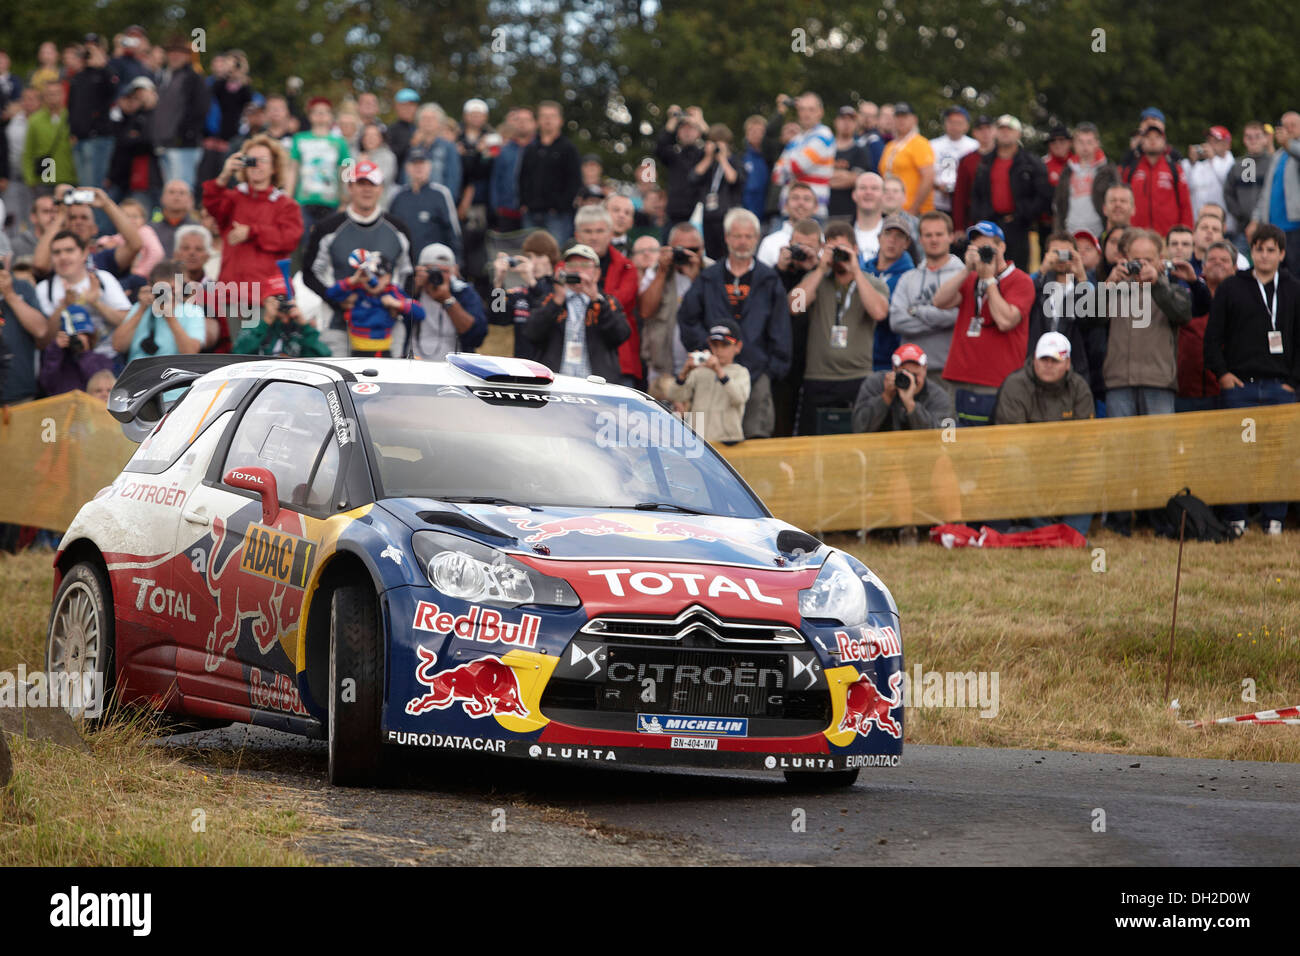 ADAC Rally Deutschland, special stage, Baumholder military training area, Sebastien Loeb, FRA, and co-driver Daniel Elena, MCO - Stock Image